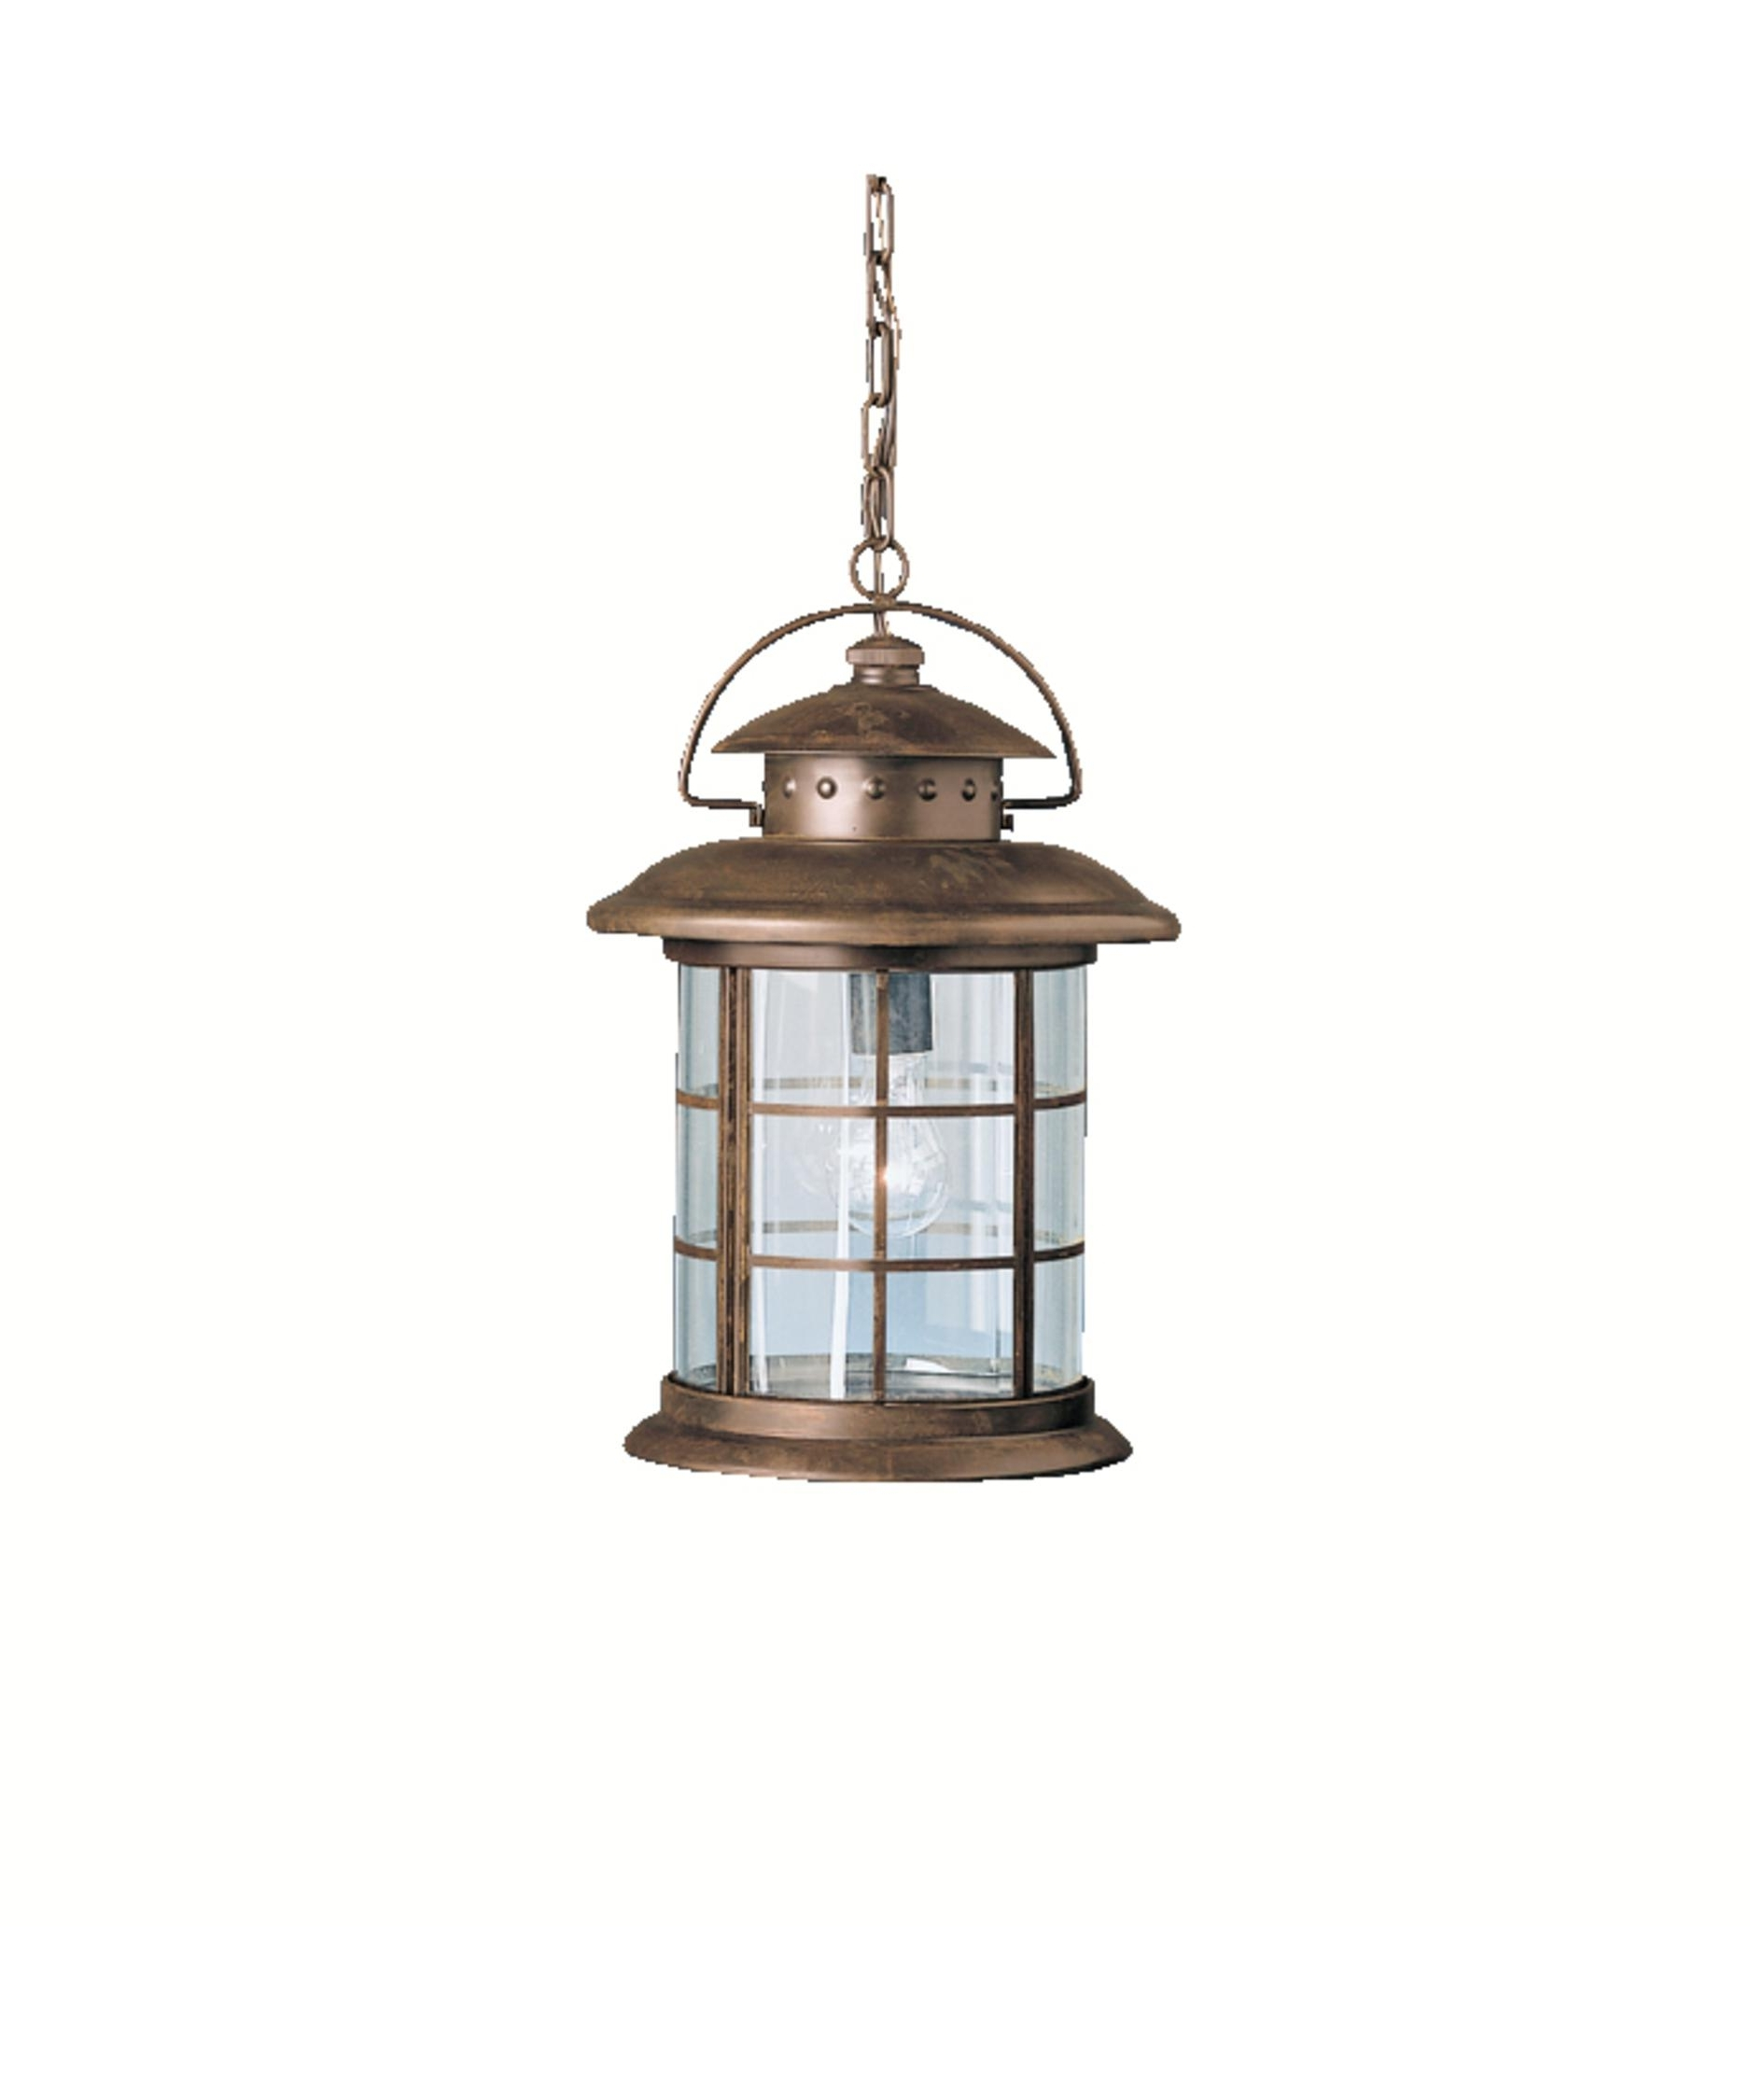 Kichler 9870 Rustic 11 Inch Wide 1 Light Outdoor Hanging Lantern Throughout Fashionable Rustic Outdoor Hanging Lights (View 6 of 20)